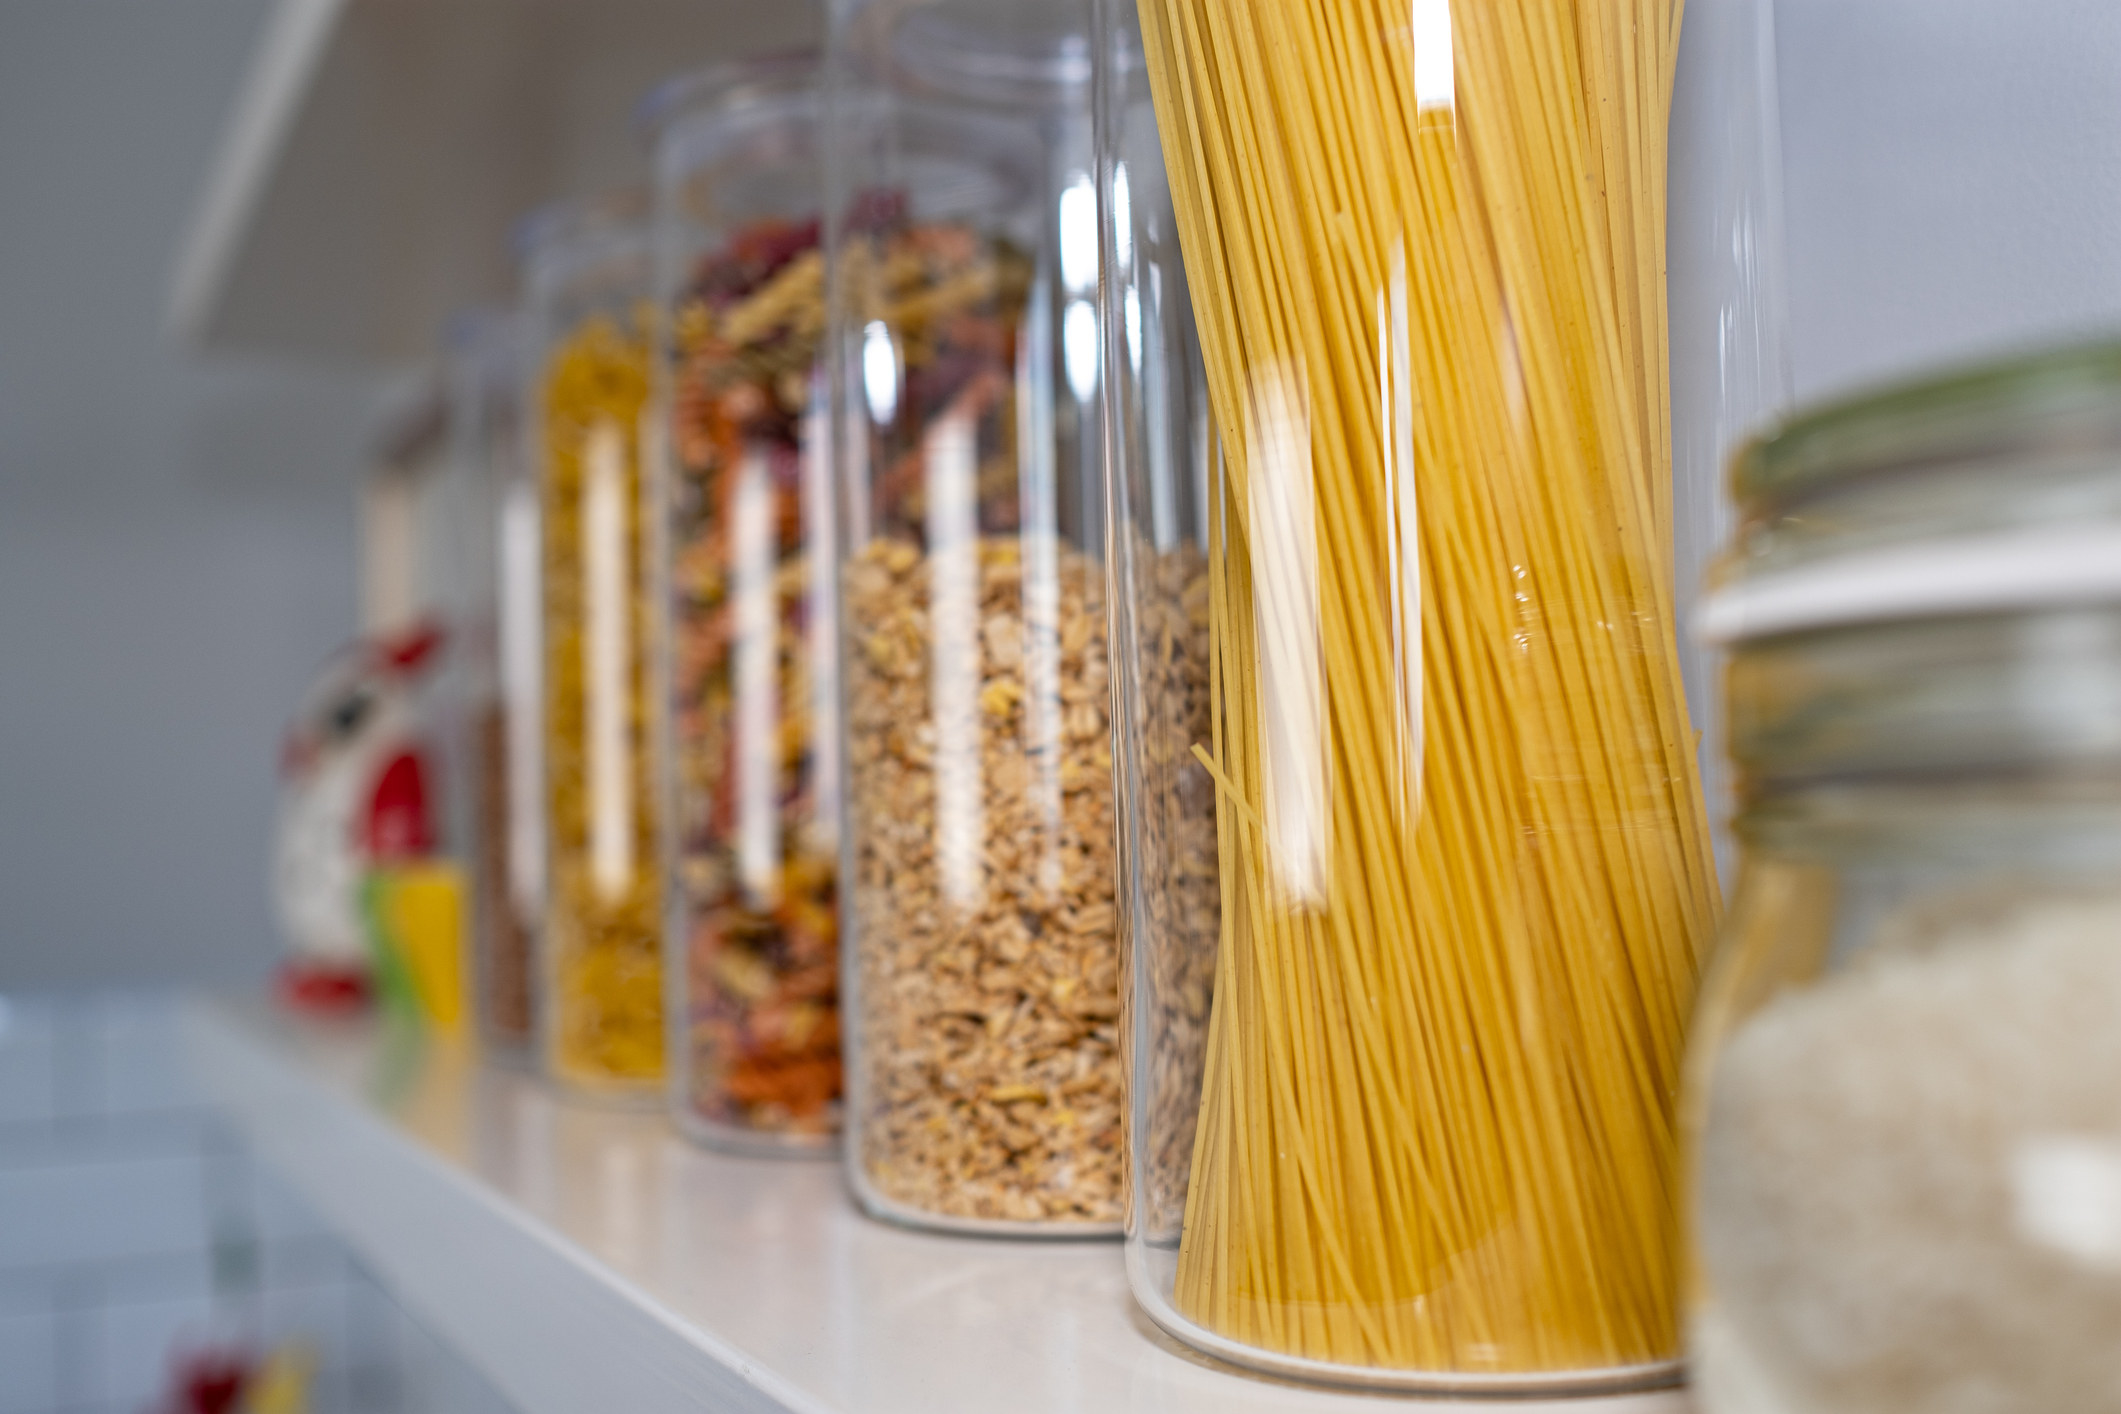 an image of pantry shelved items such as pasta, granola and other various snacks in glass containers